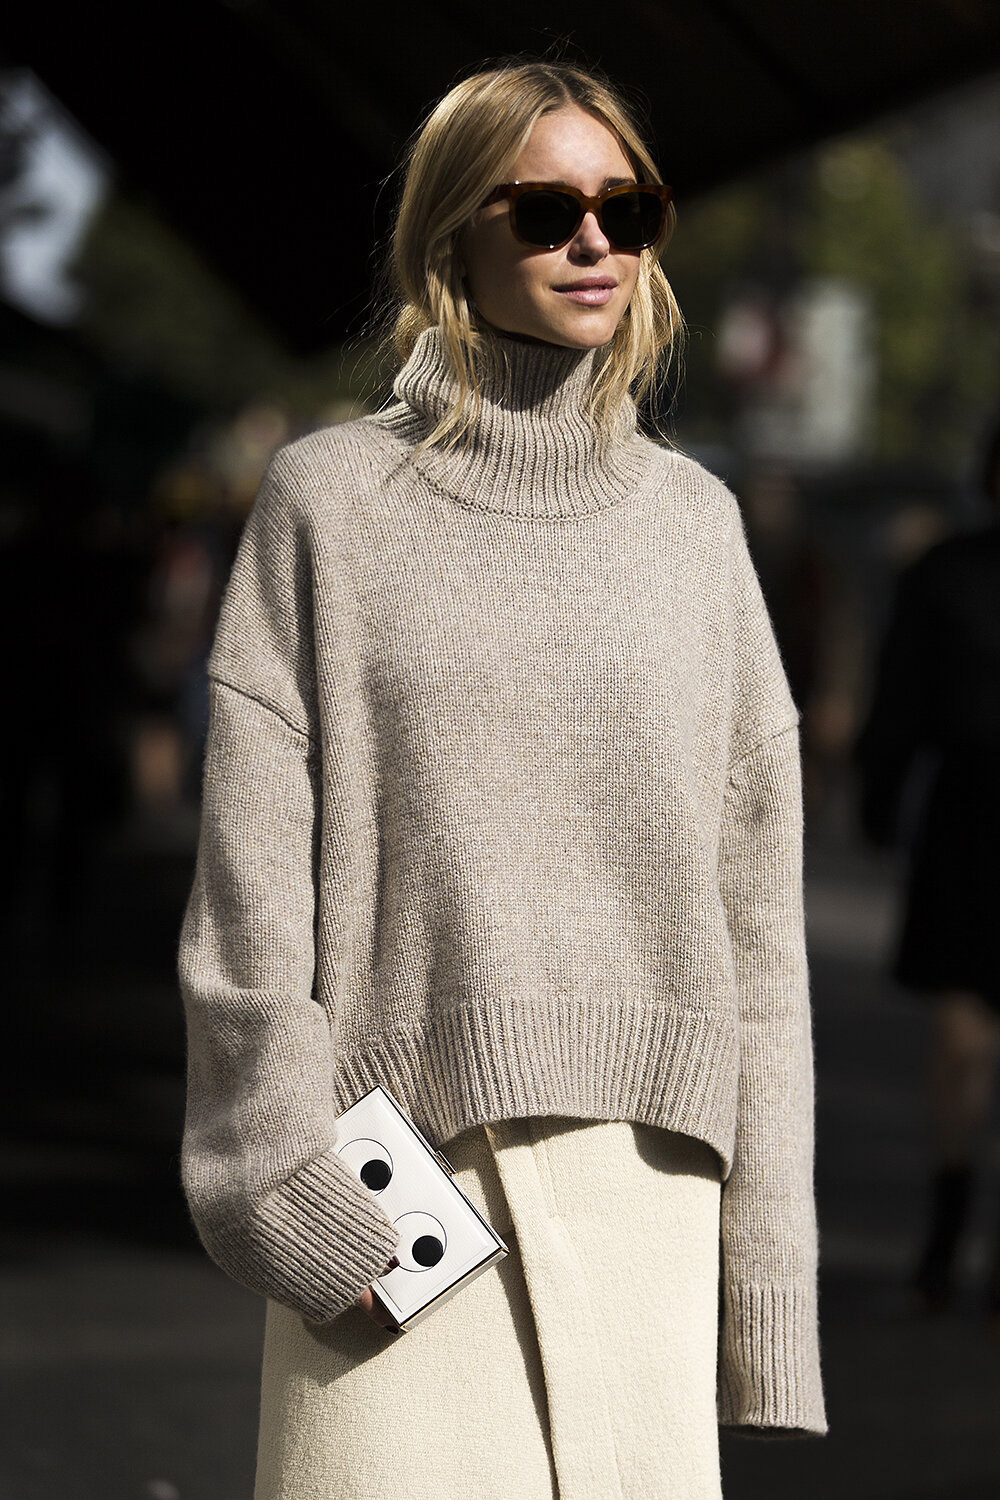 Pernille-Teisbaek-On-the-Streets-Of-Paris.jpg